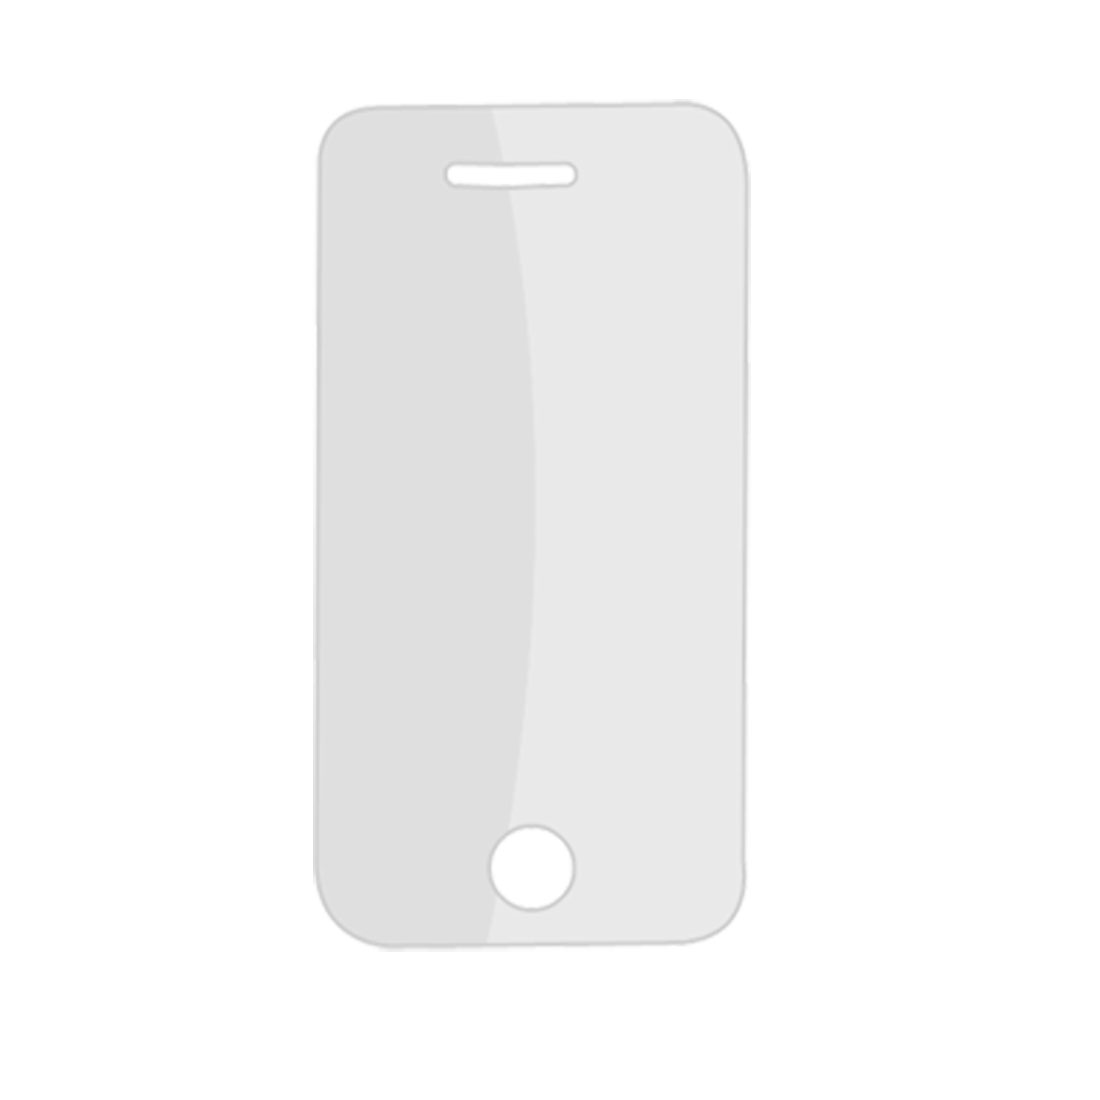 Clear Phone Touch Screen Guard Protector for Apple iPhone 4